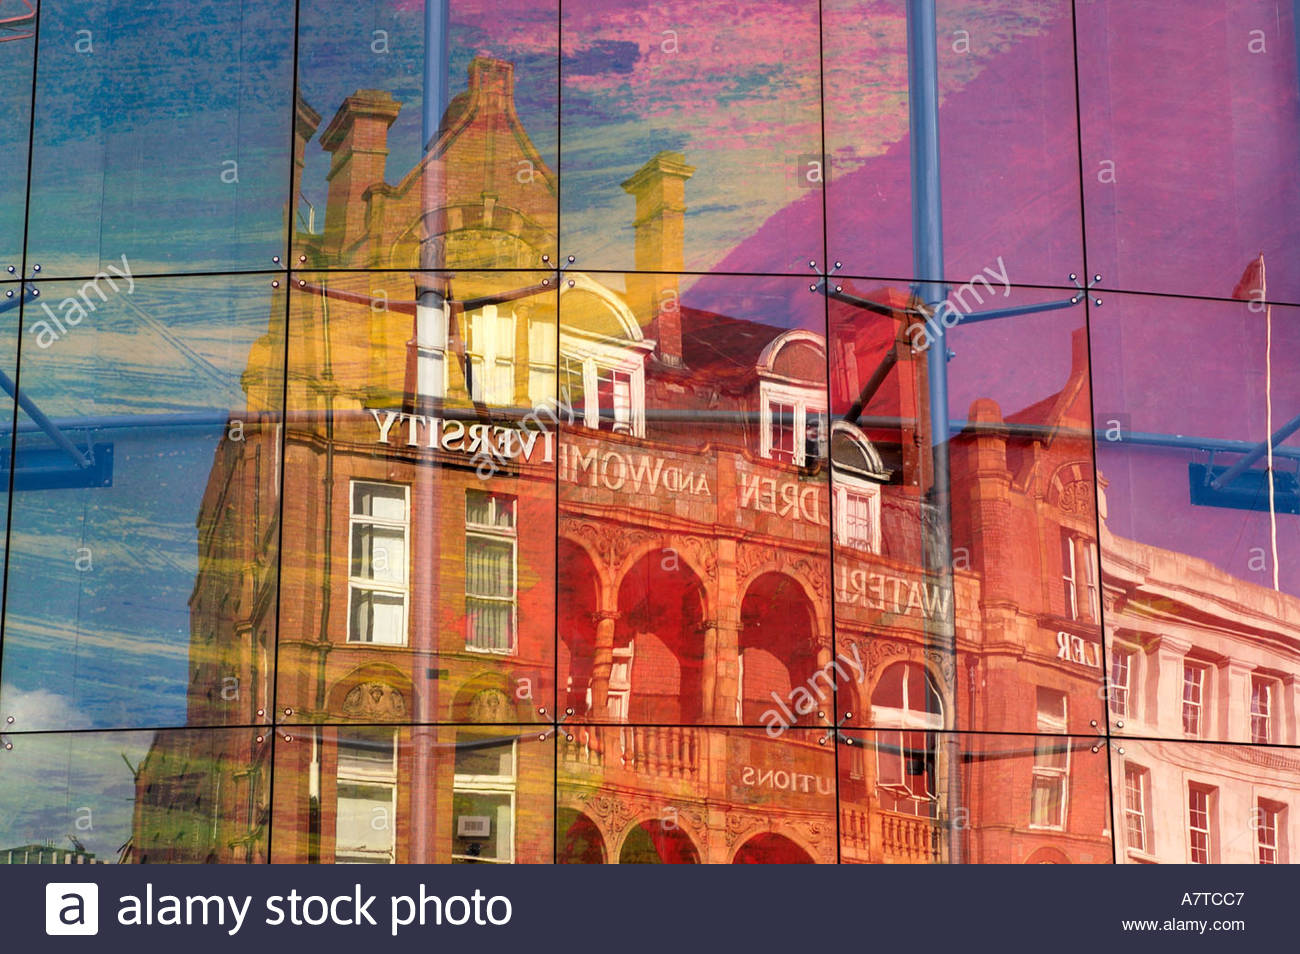 The Royal Waterloo hospital for Children and Women and the Schiller Universtiy building reflected in the curved - Stock Image